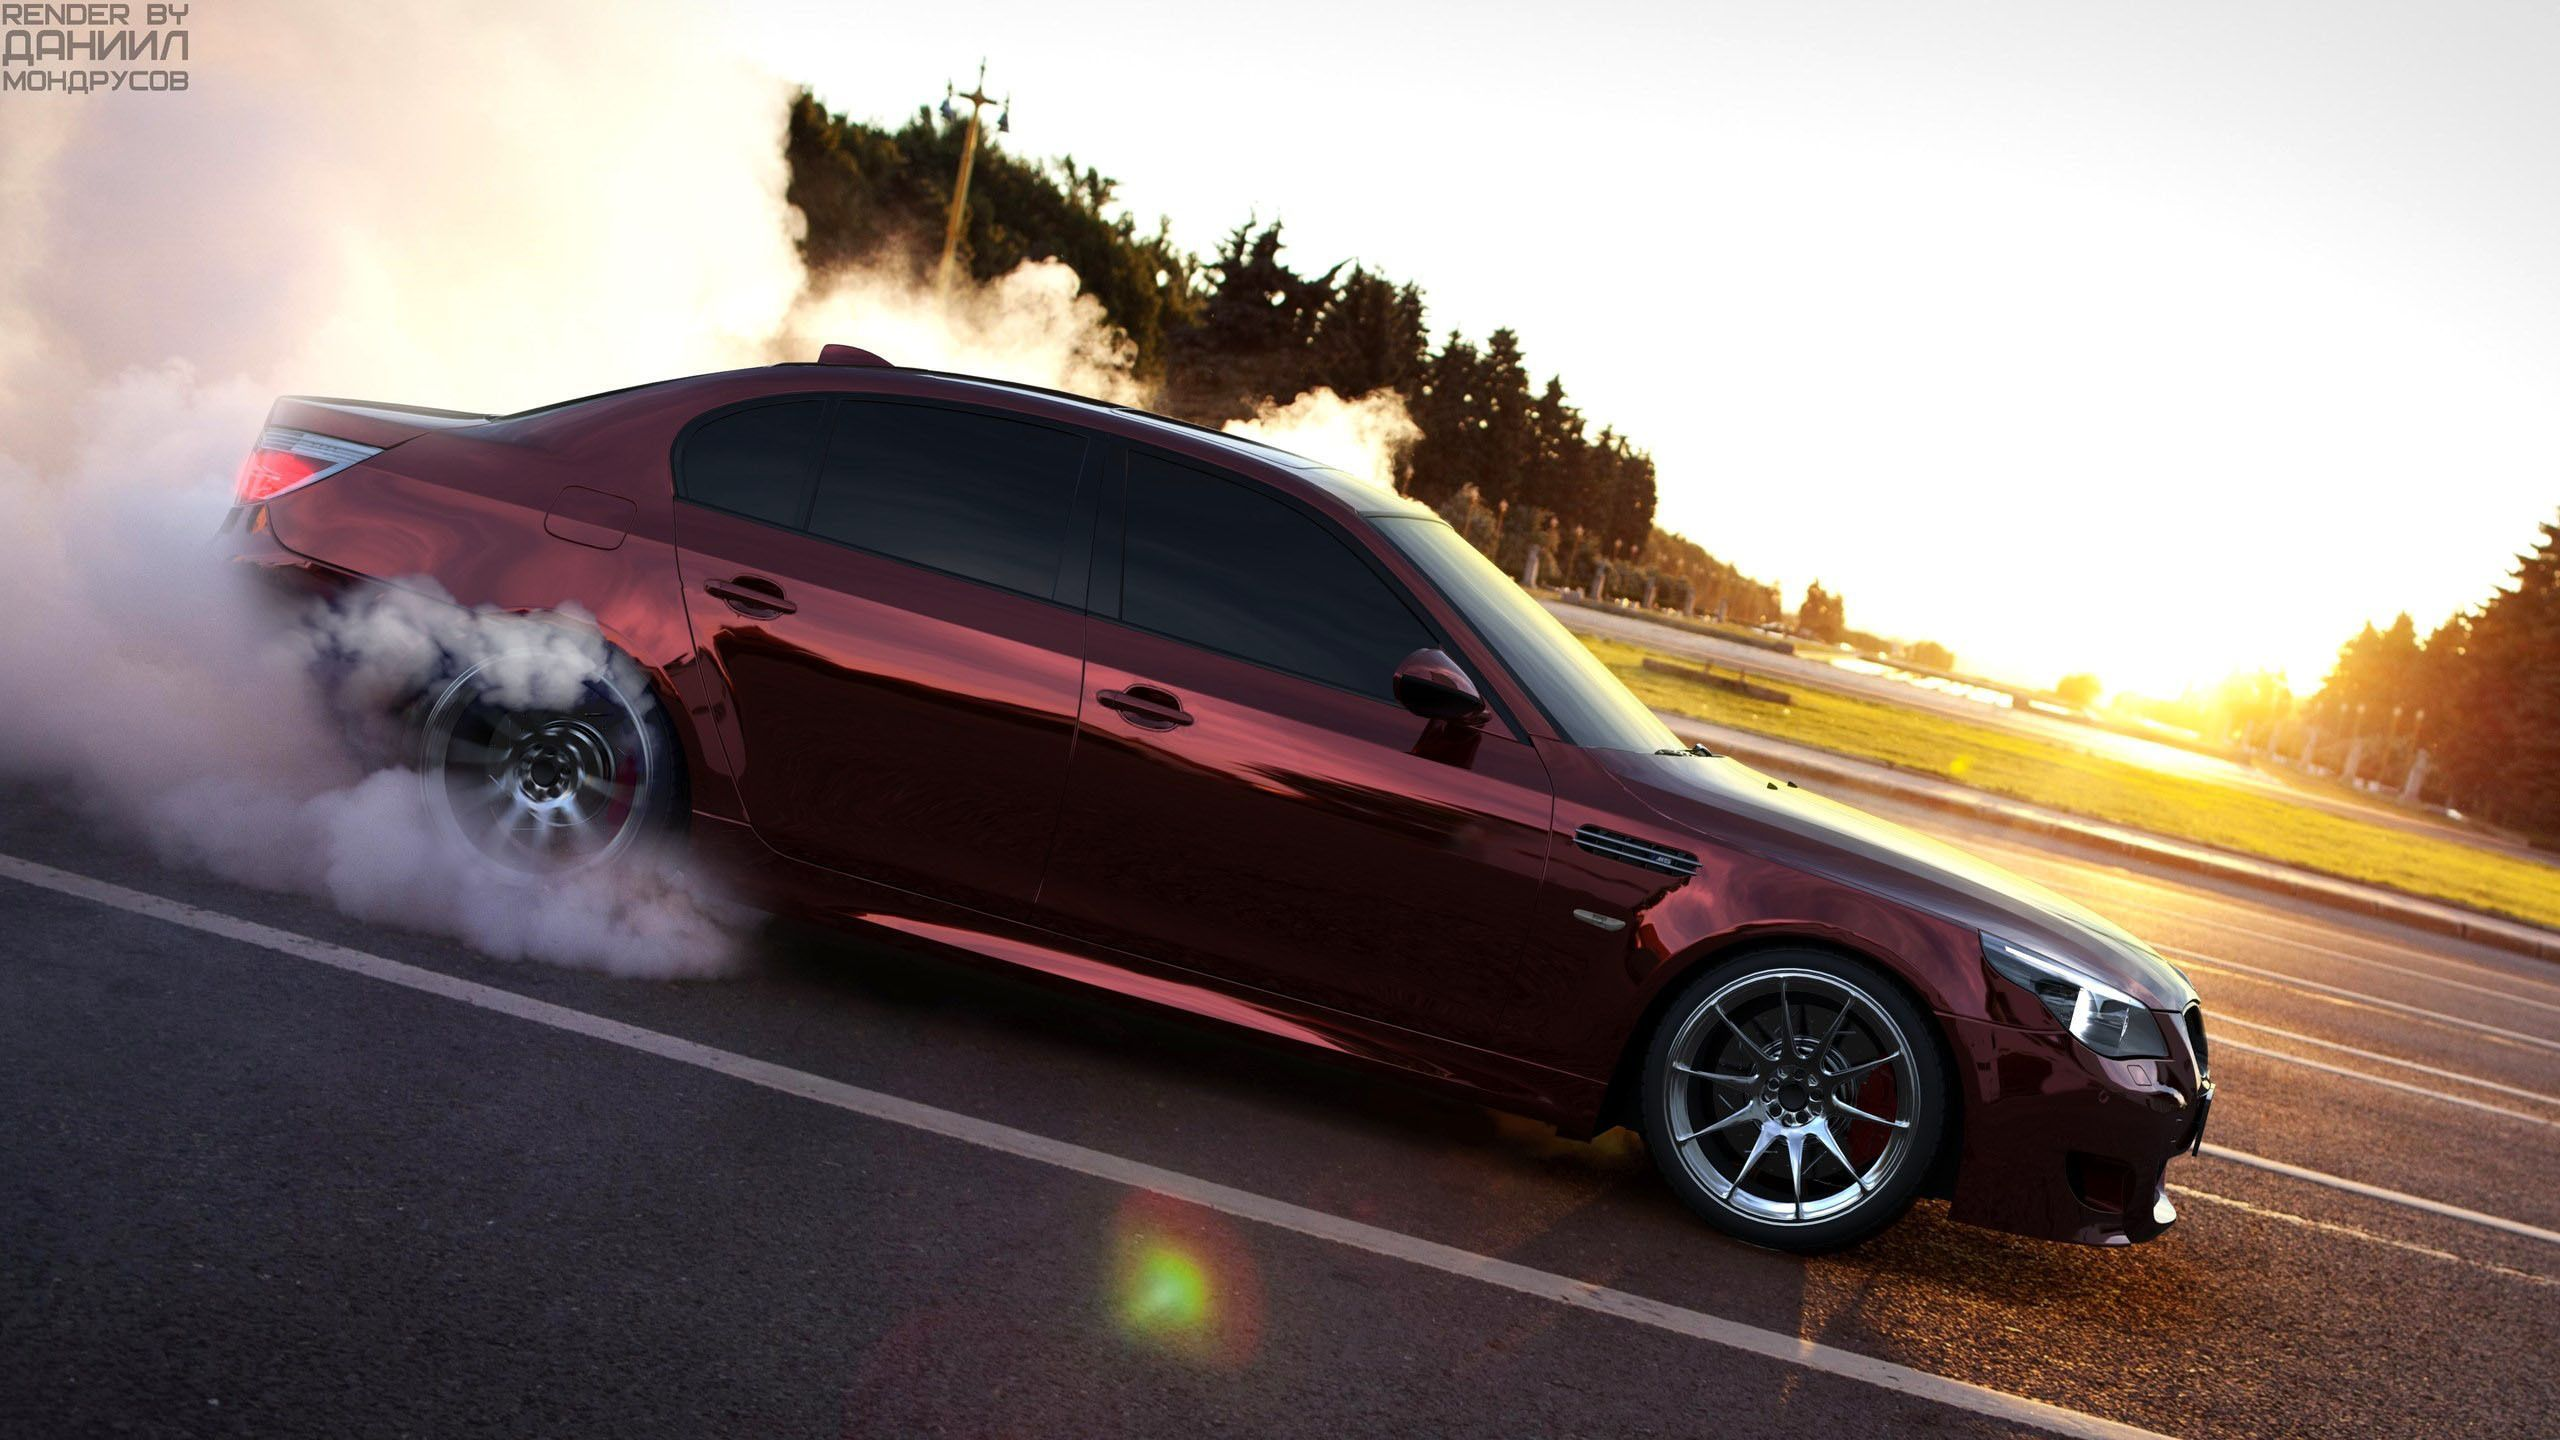 Bmw M5 V10 Wallpapers Top Free Bmw M5 V10 Backgrounds Wallpaperaccess